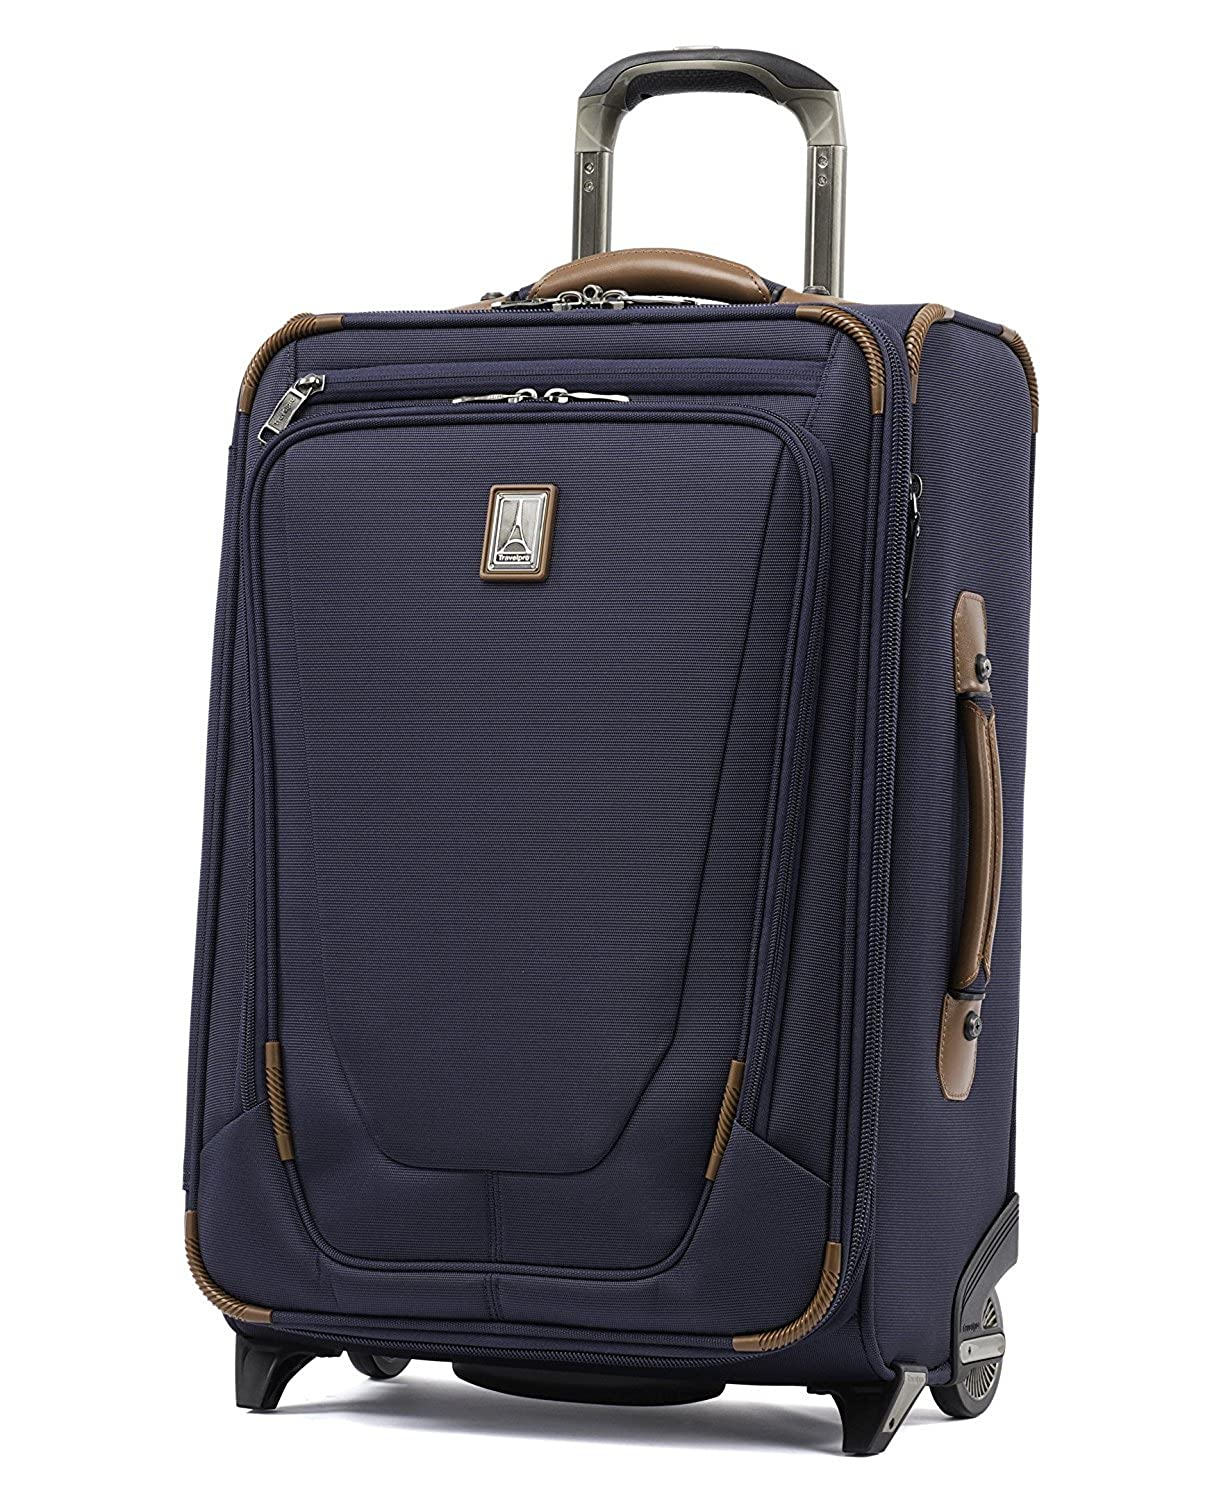 (トラベルプロ) Travelpro Crew 11 22` Expandable Rollaboard Wheeled Suiter Suitcase バッグ、旅行バッグ[並行輸入品] B07D4CDHV5 Patriot Blue One Size